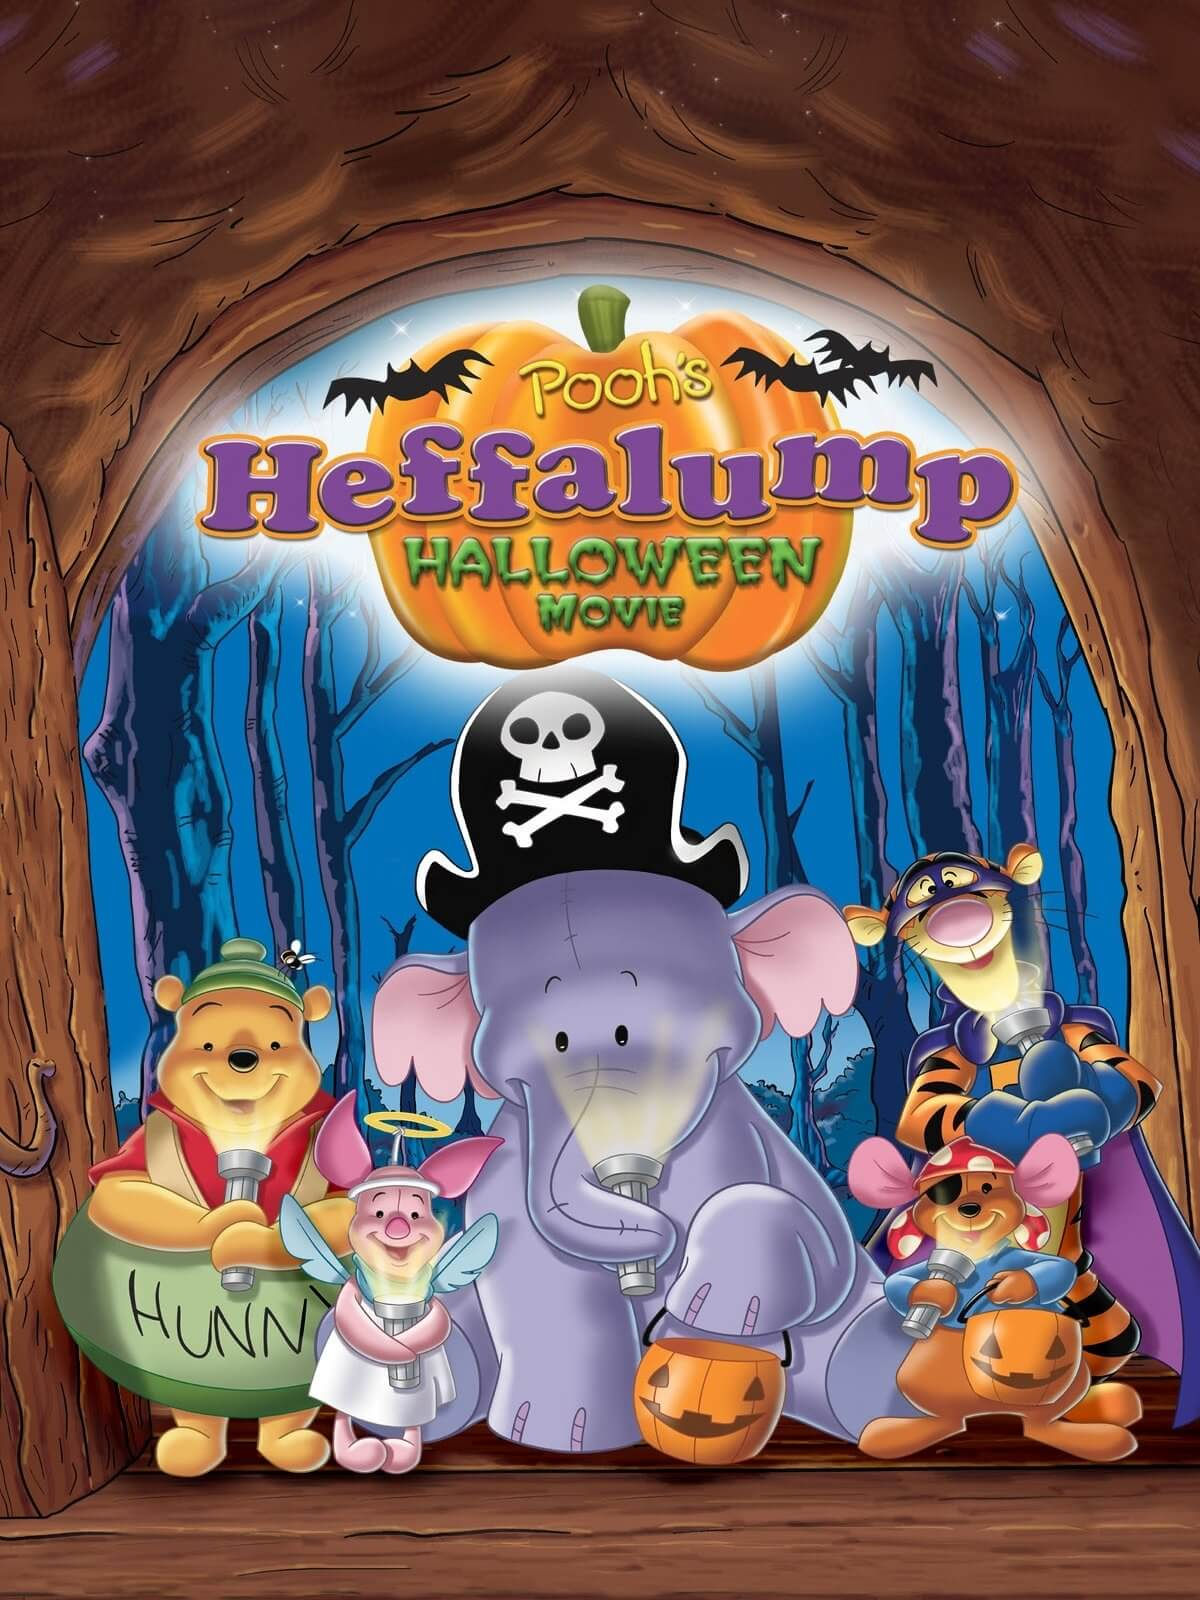 POOH'S HEFFALUMP HALLOWEEN MOVIE halloween movie